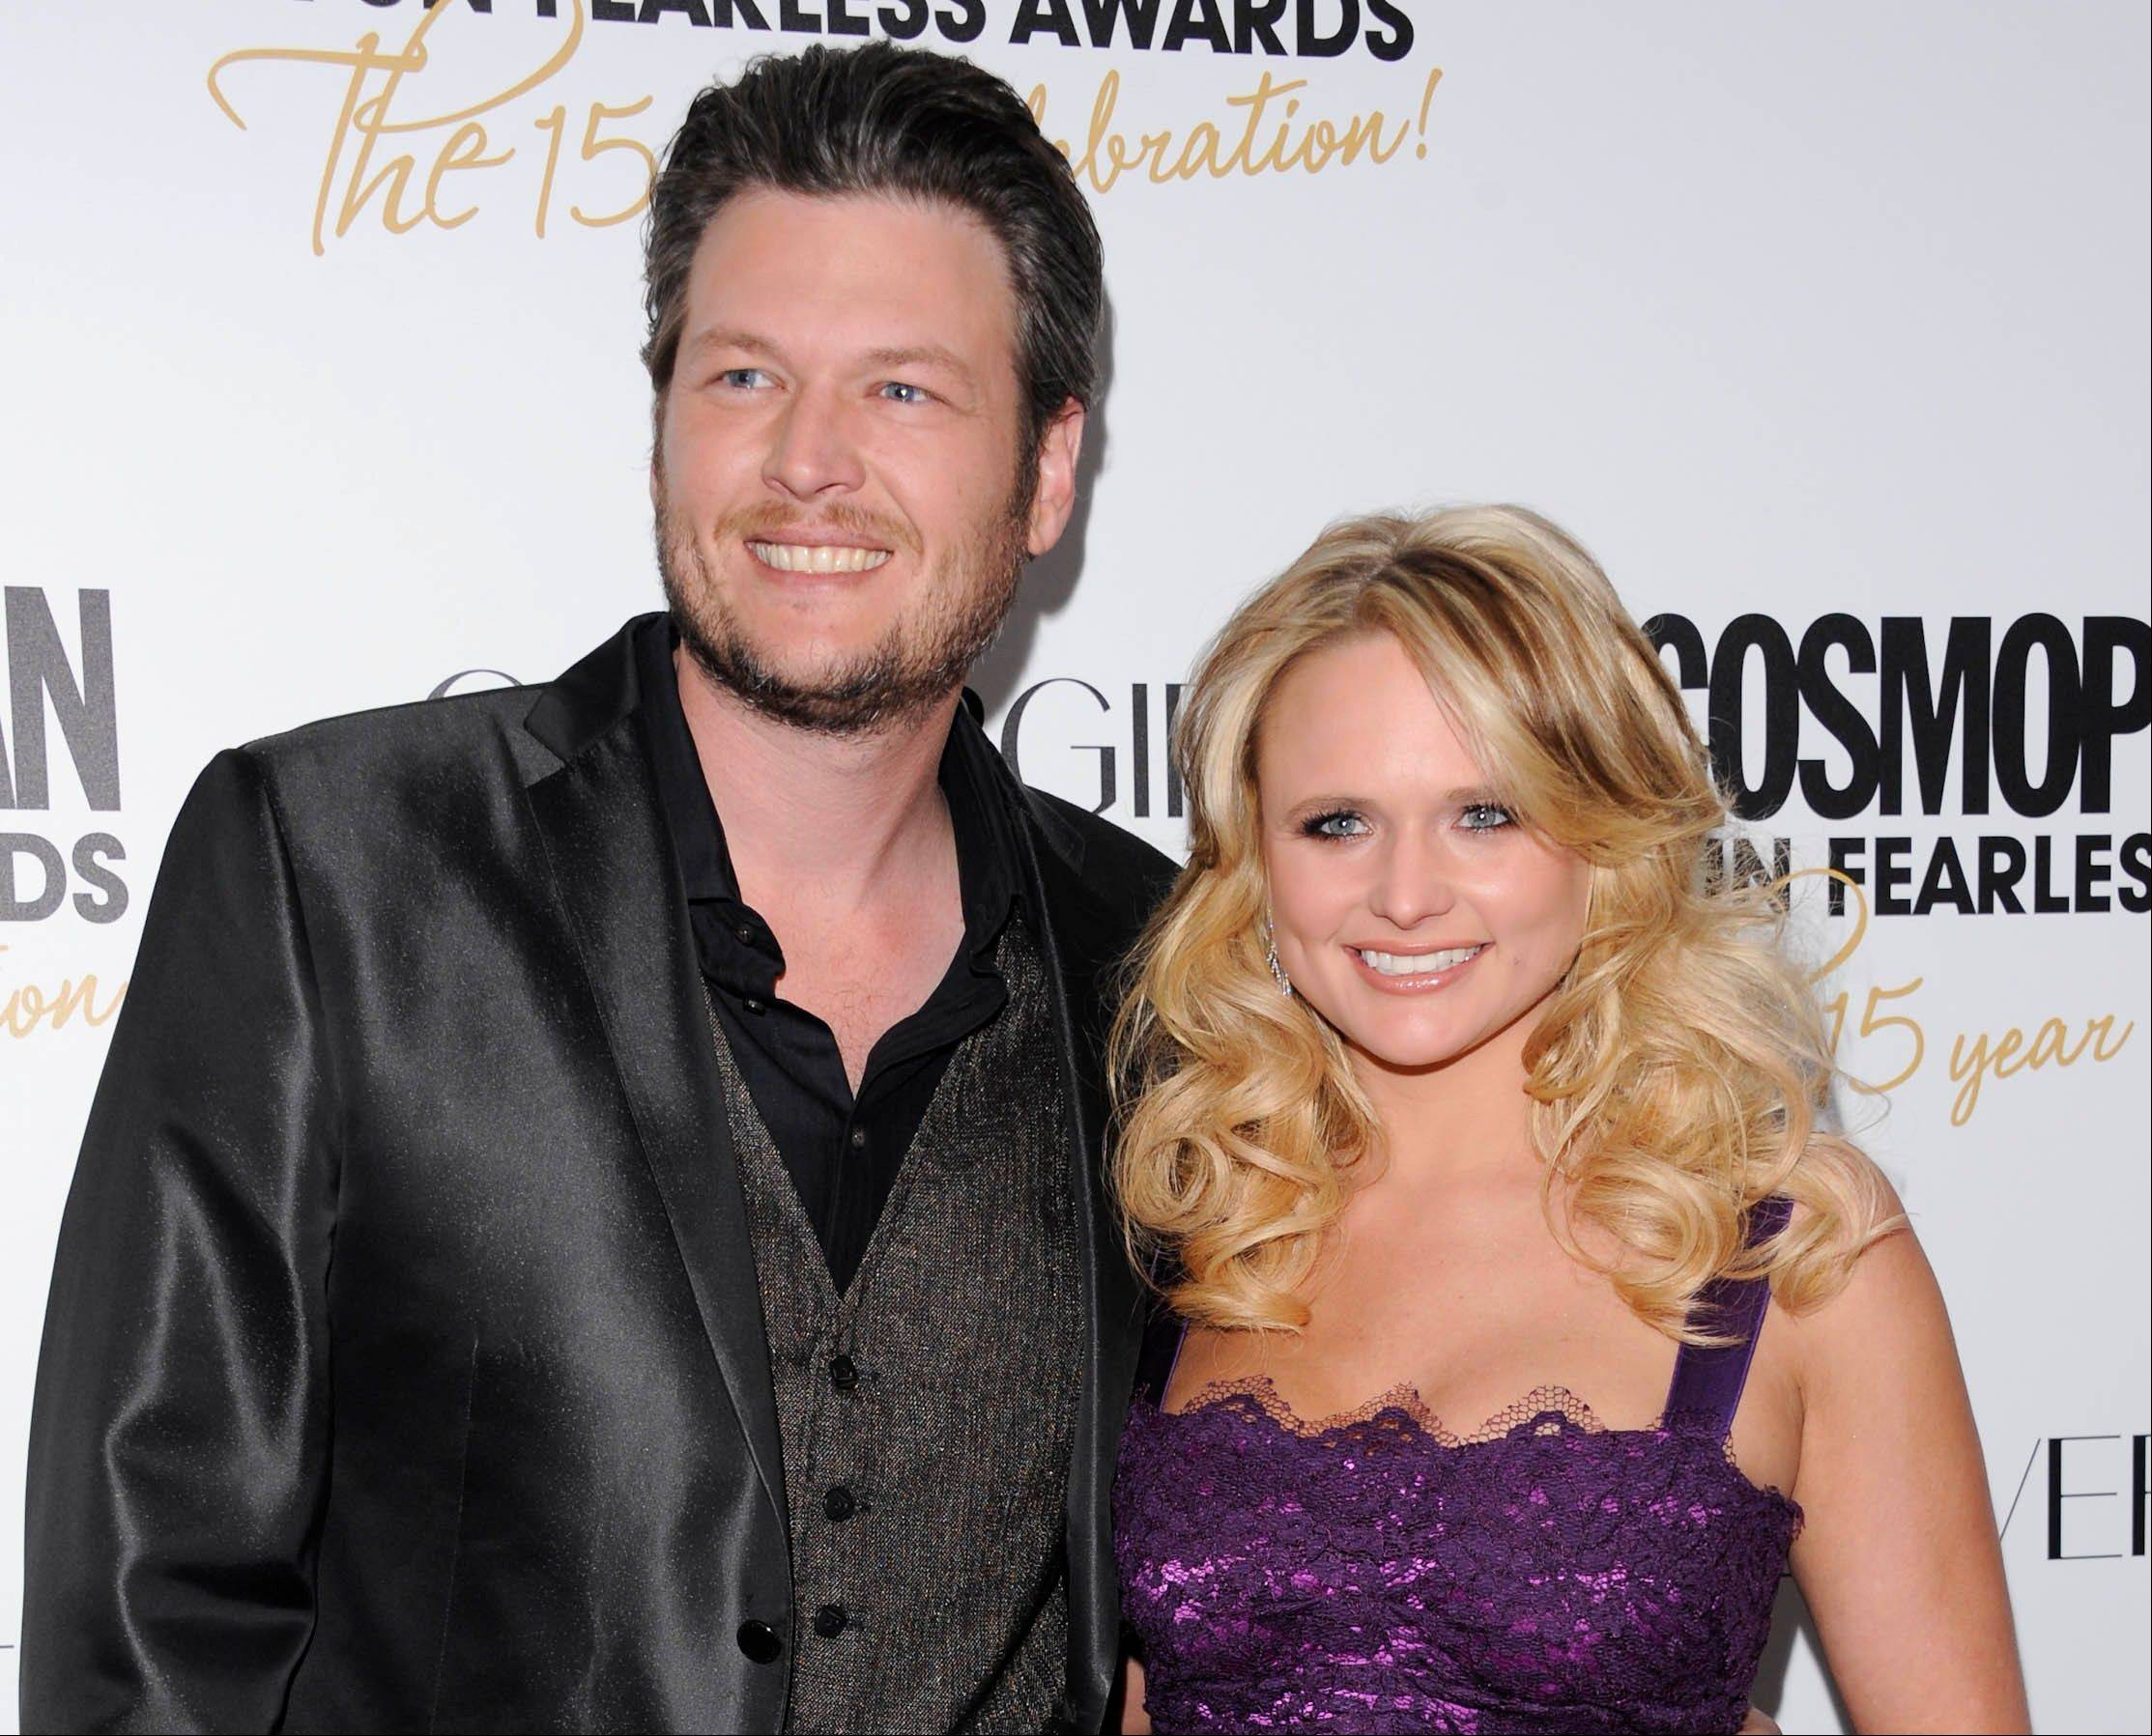 Country singers Blake Shelton and his wife, Miranda Lambert, are both nominated for a Grammy award for best country solo performance.